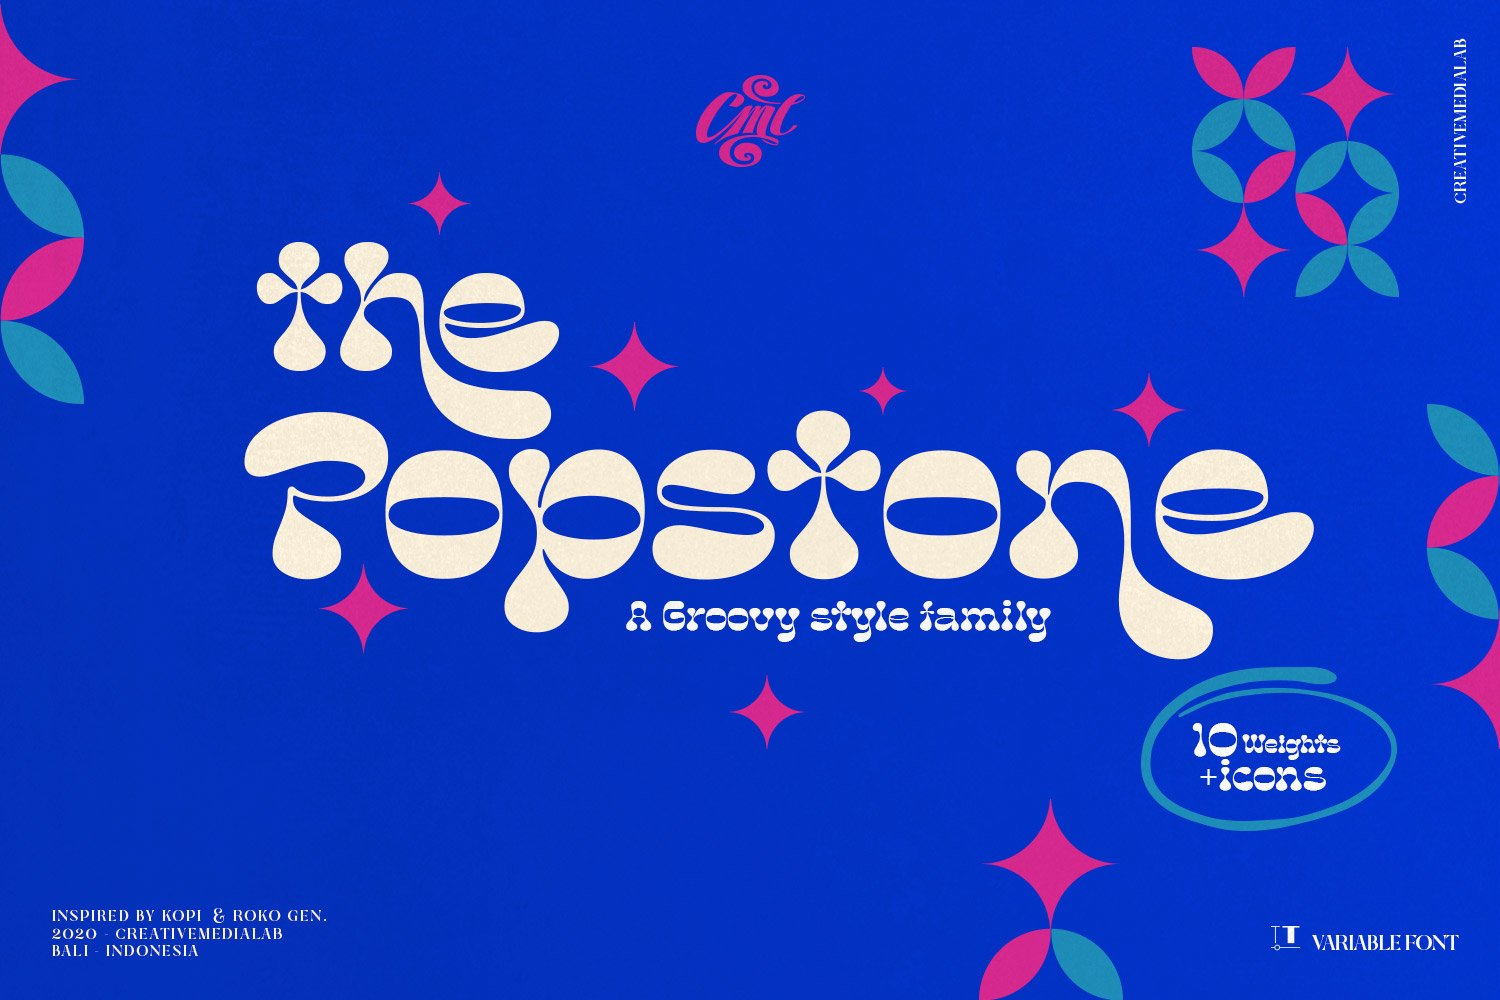 Popstone - Groovy Variable Font example image 4